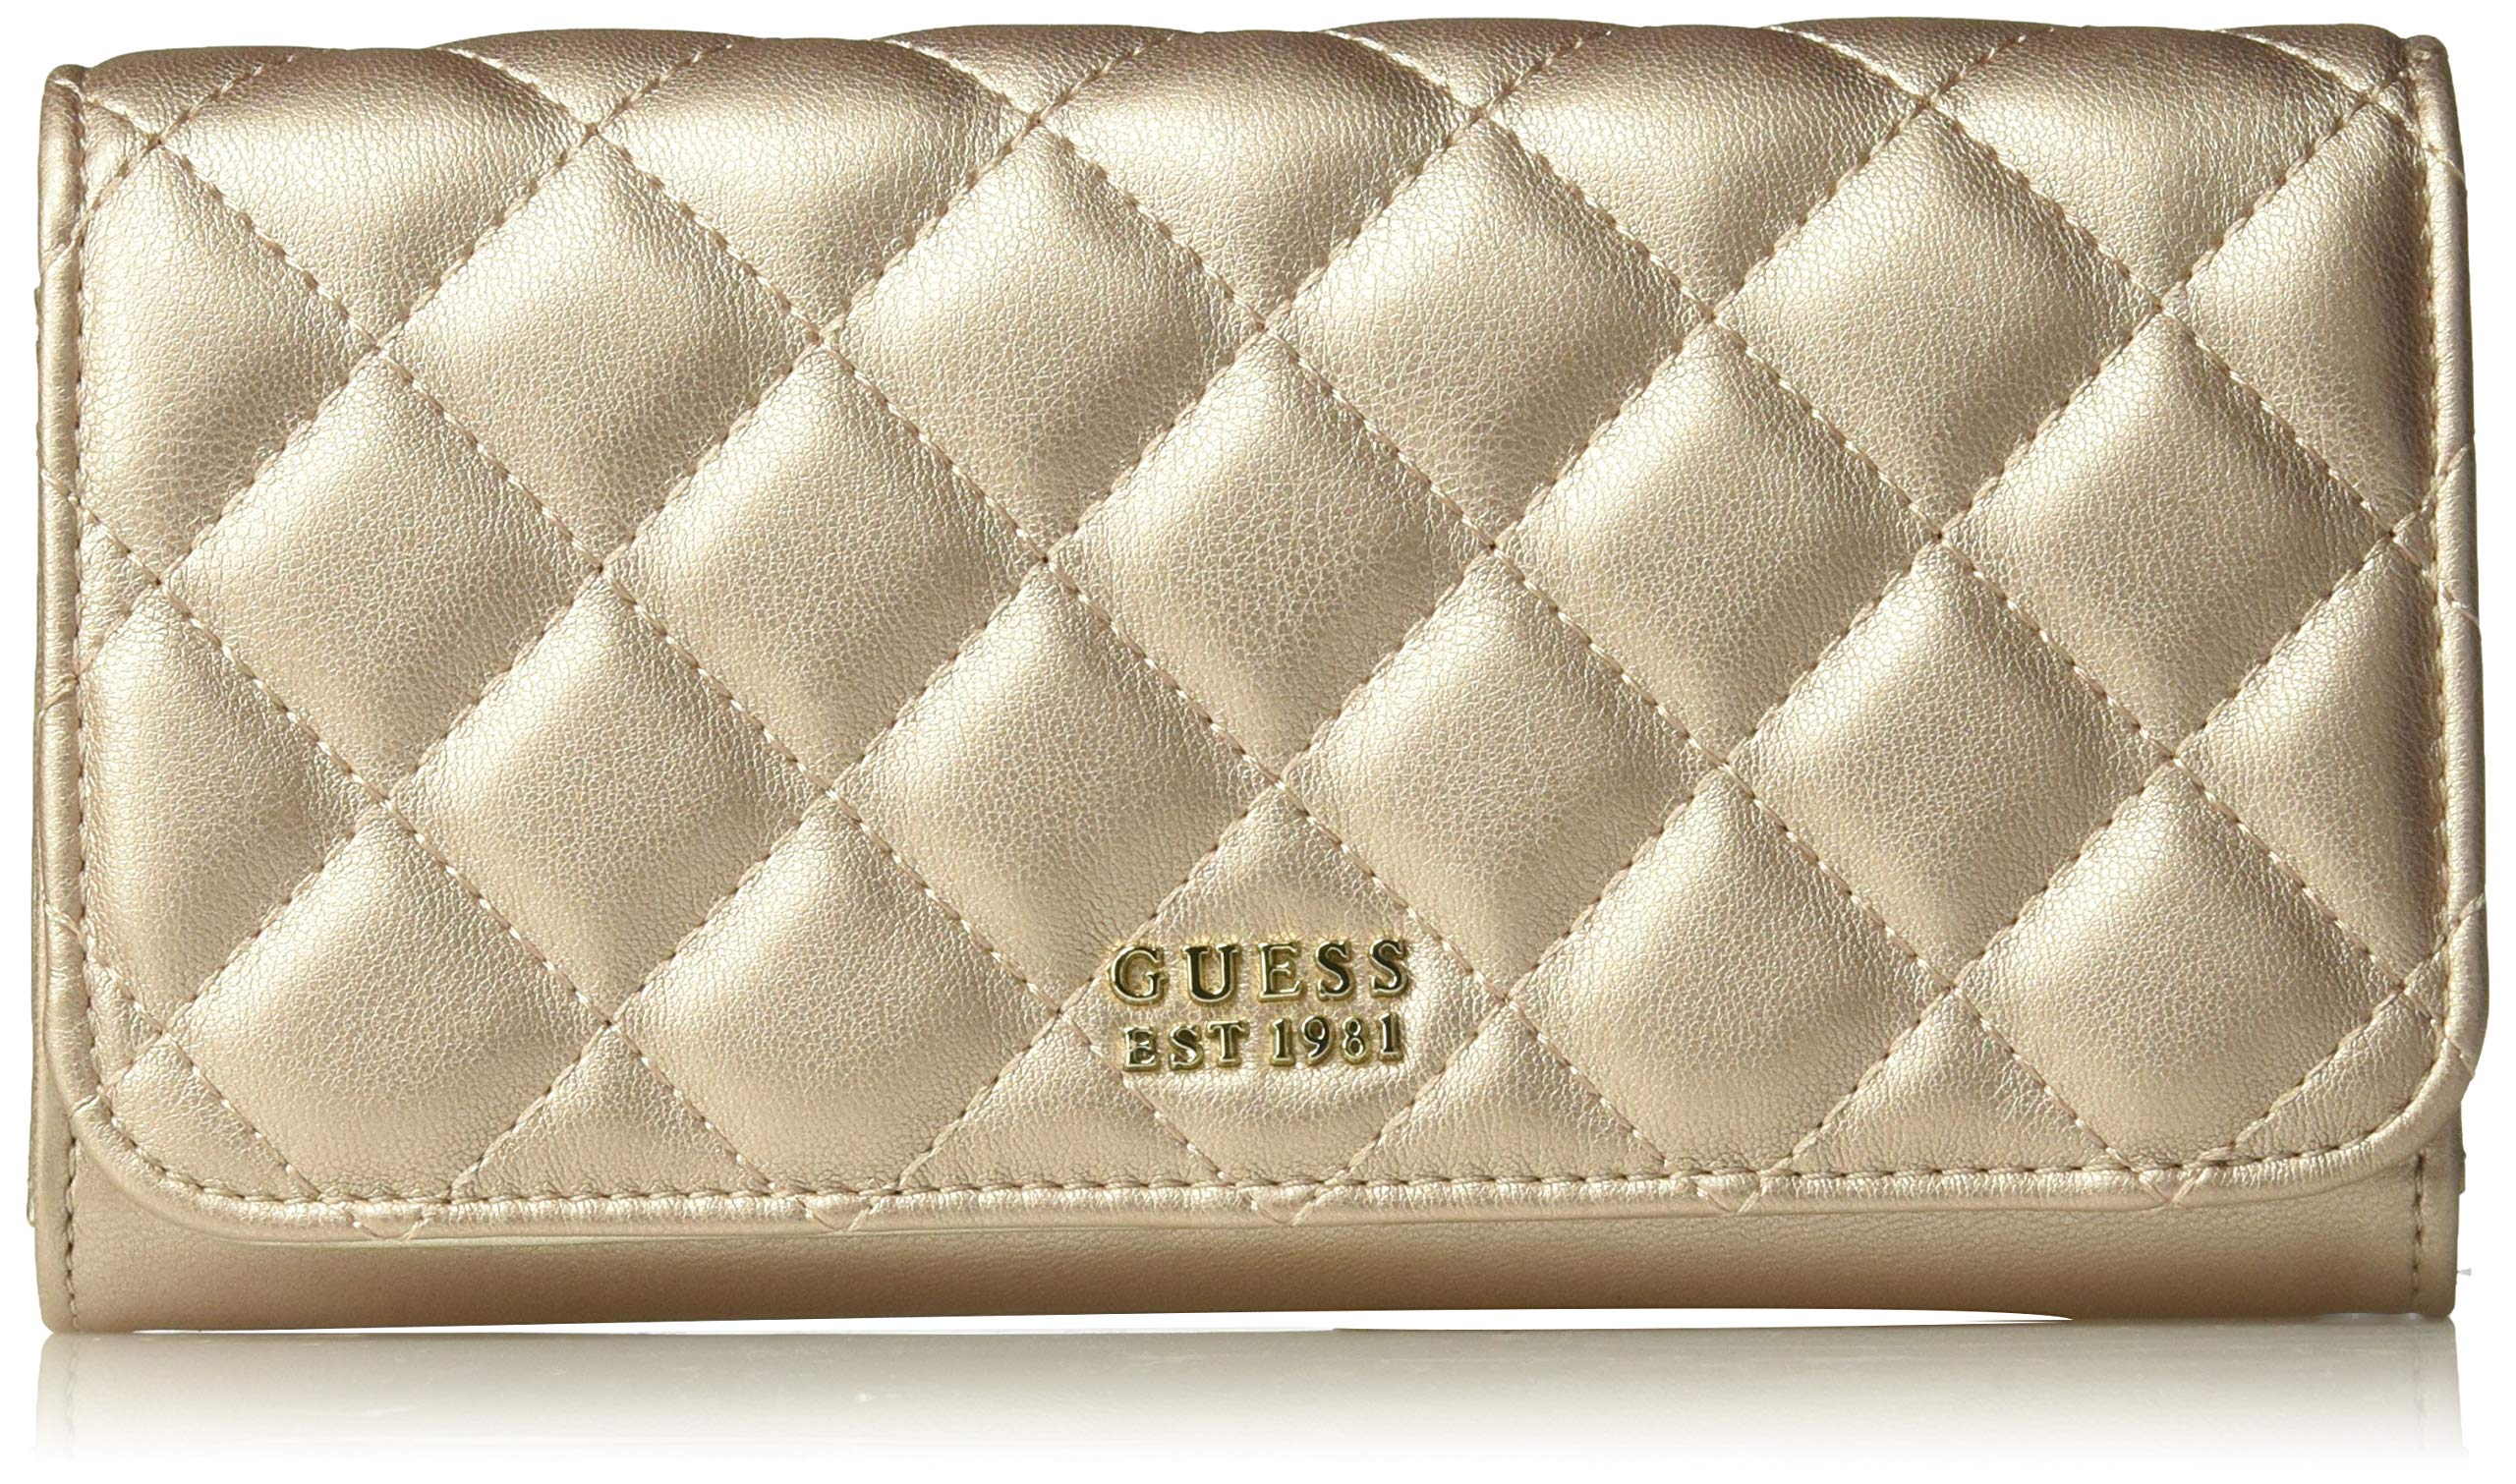 GUESS Victoria Large Flap Organizer Wallet, champagne